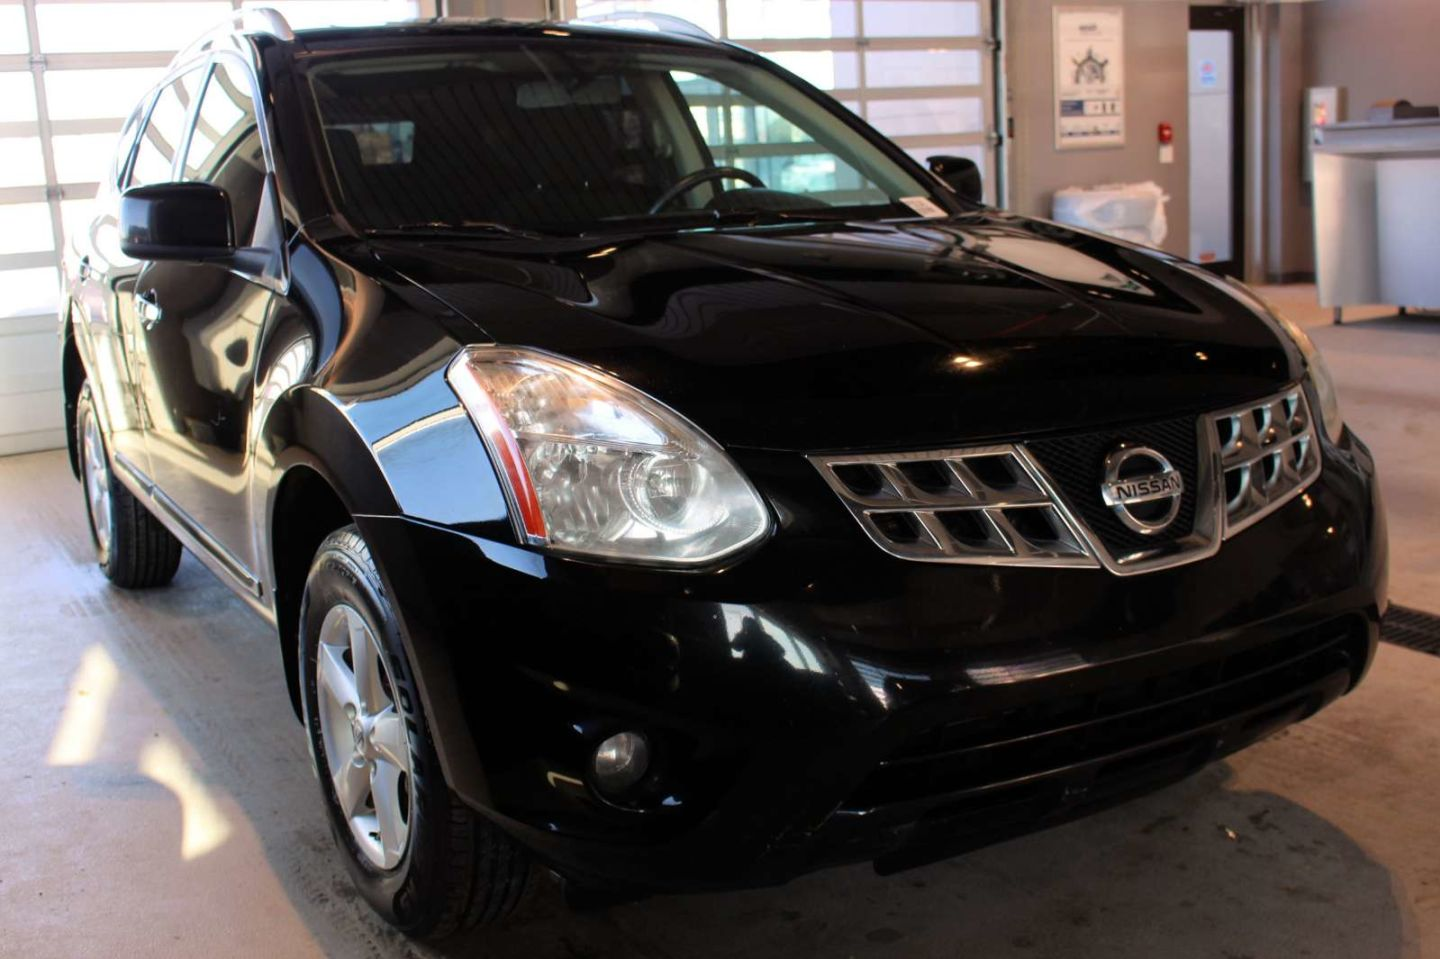 2013 Nissan Rogue S for sale in Spruce Grove, Alberta